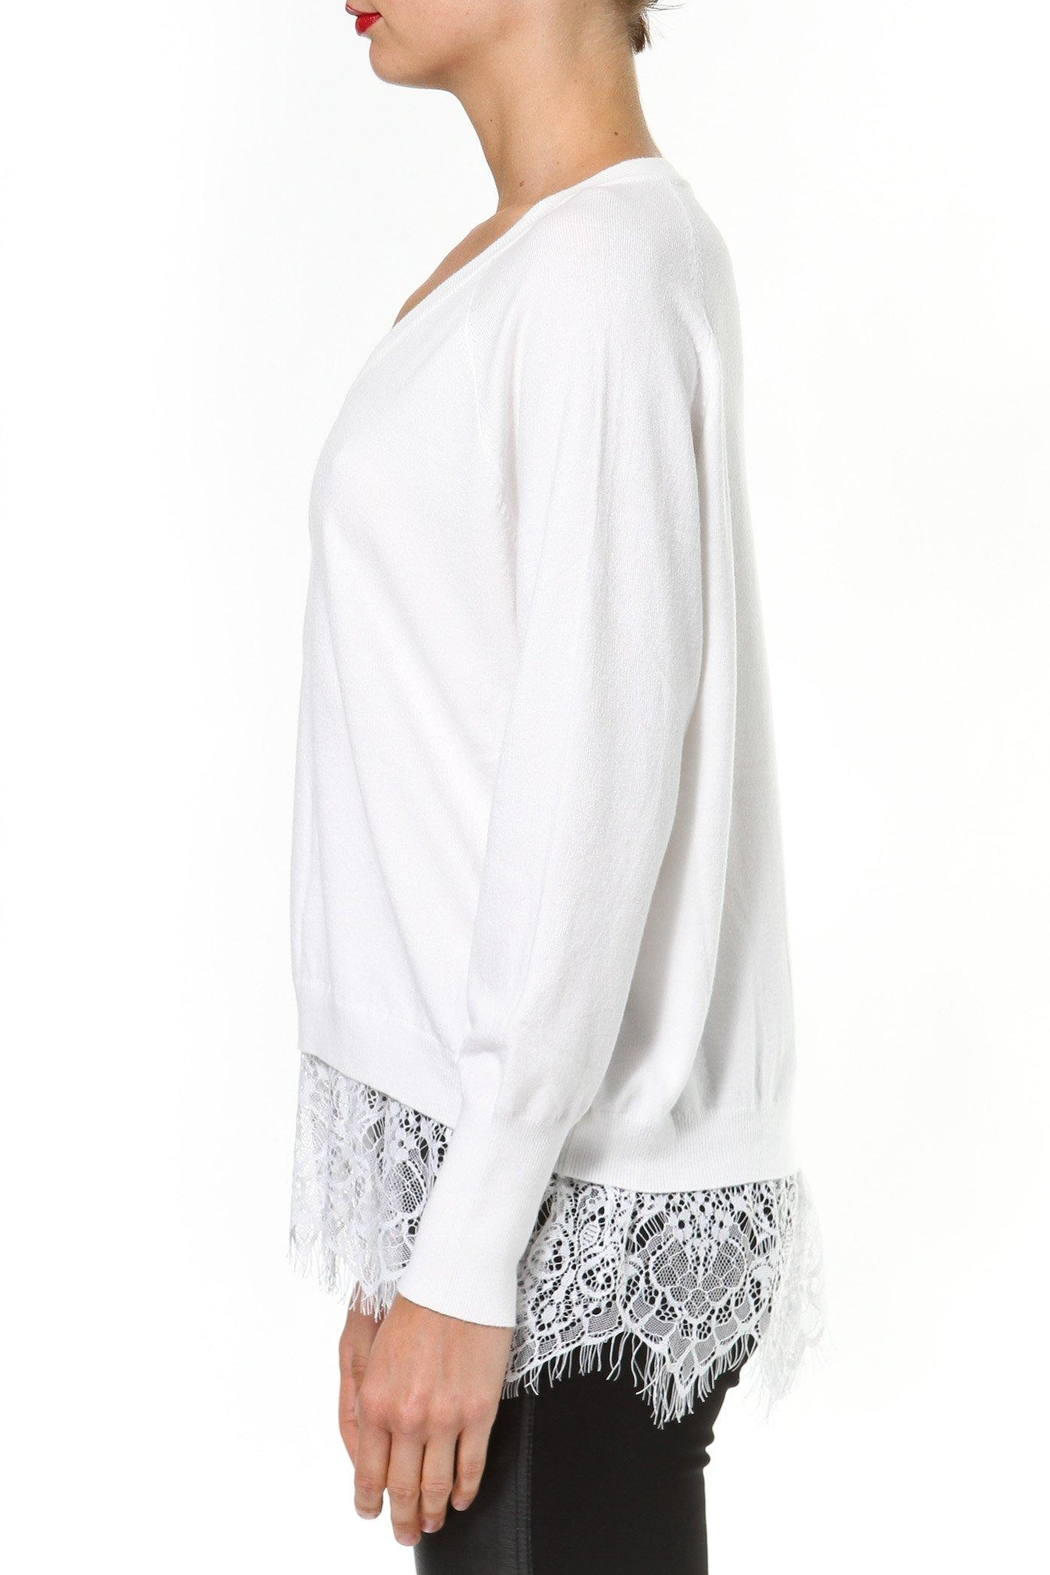 Madonna & Co Lace Trim Sweater - Front Full Image